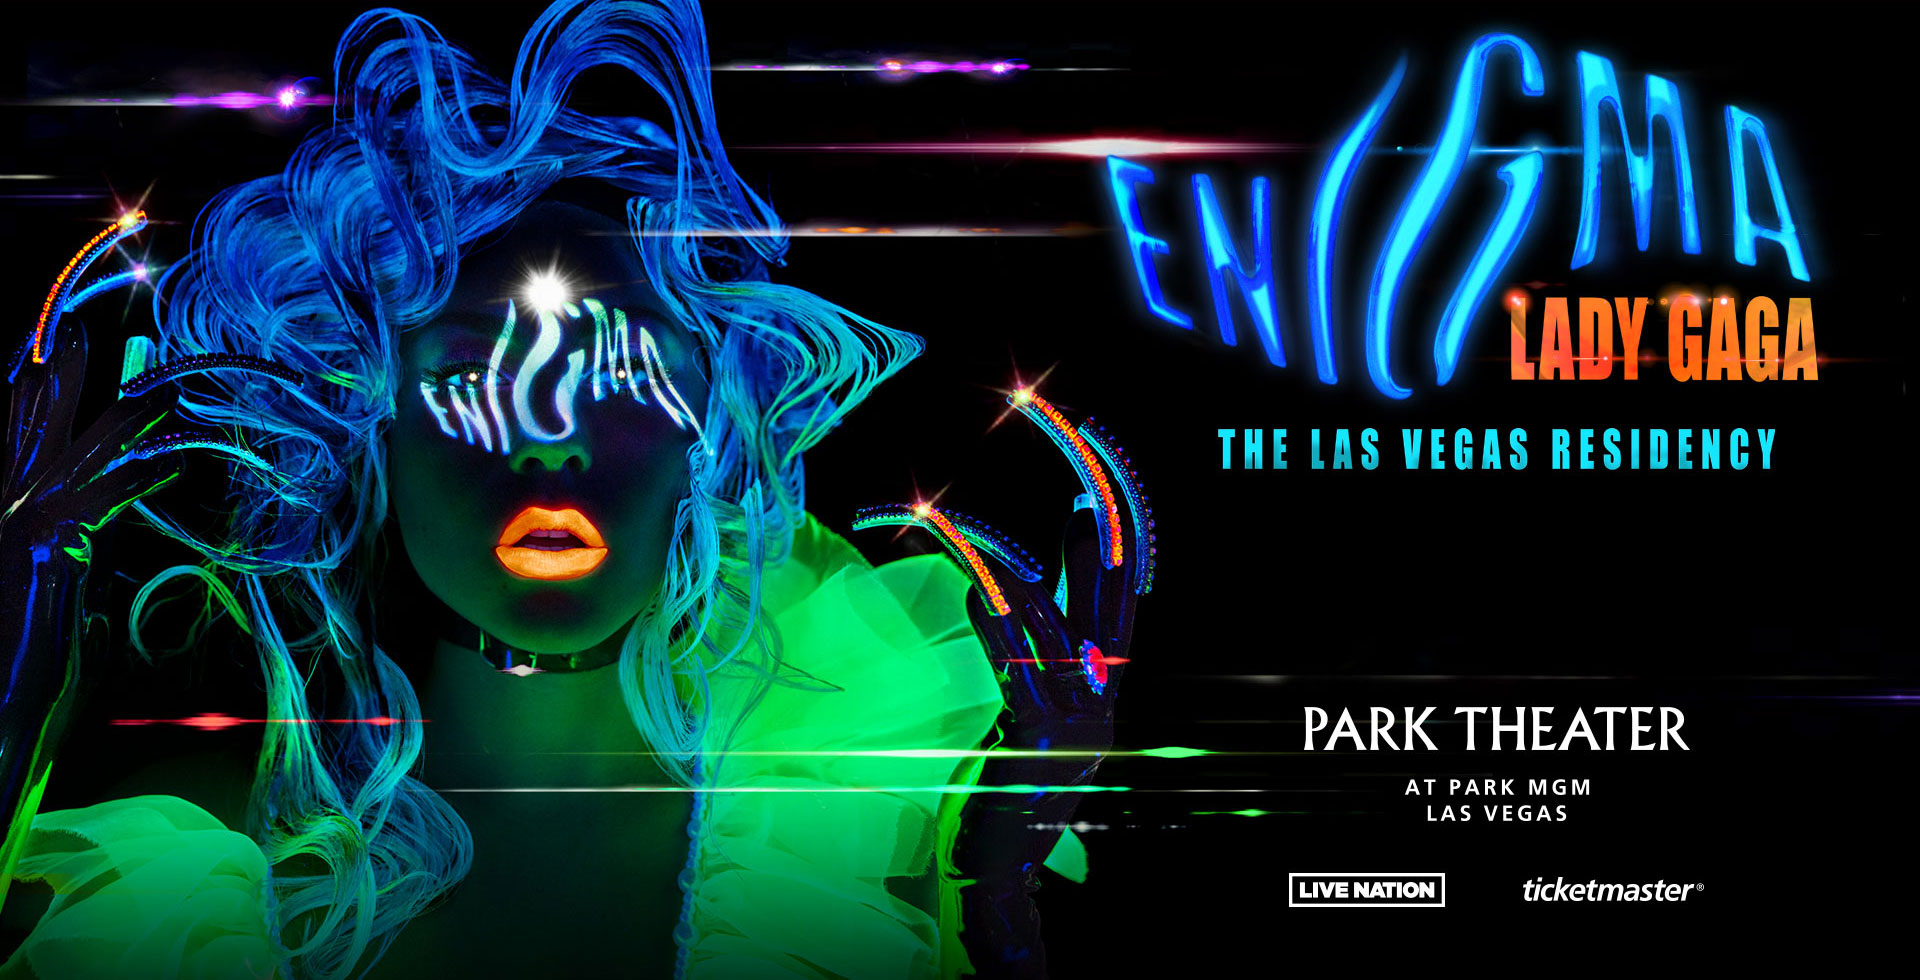 Lady Gaga The Las Vegas Residency